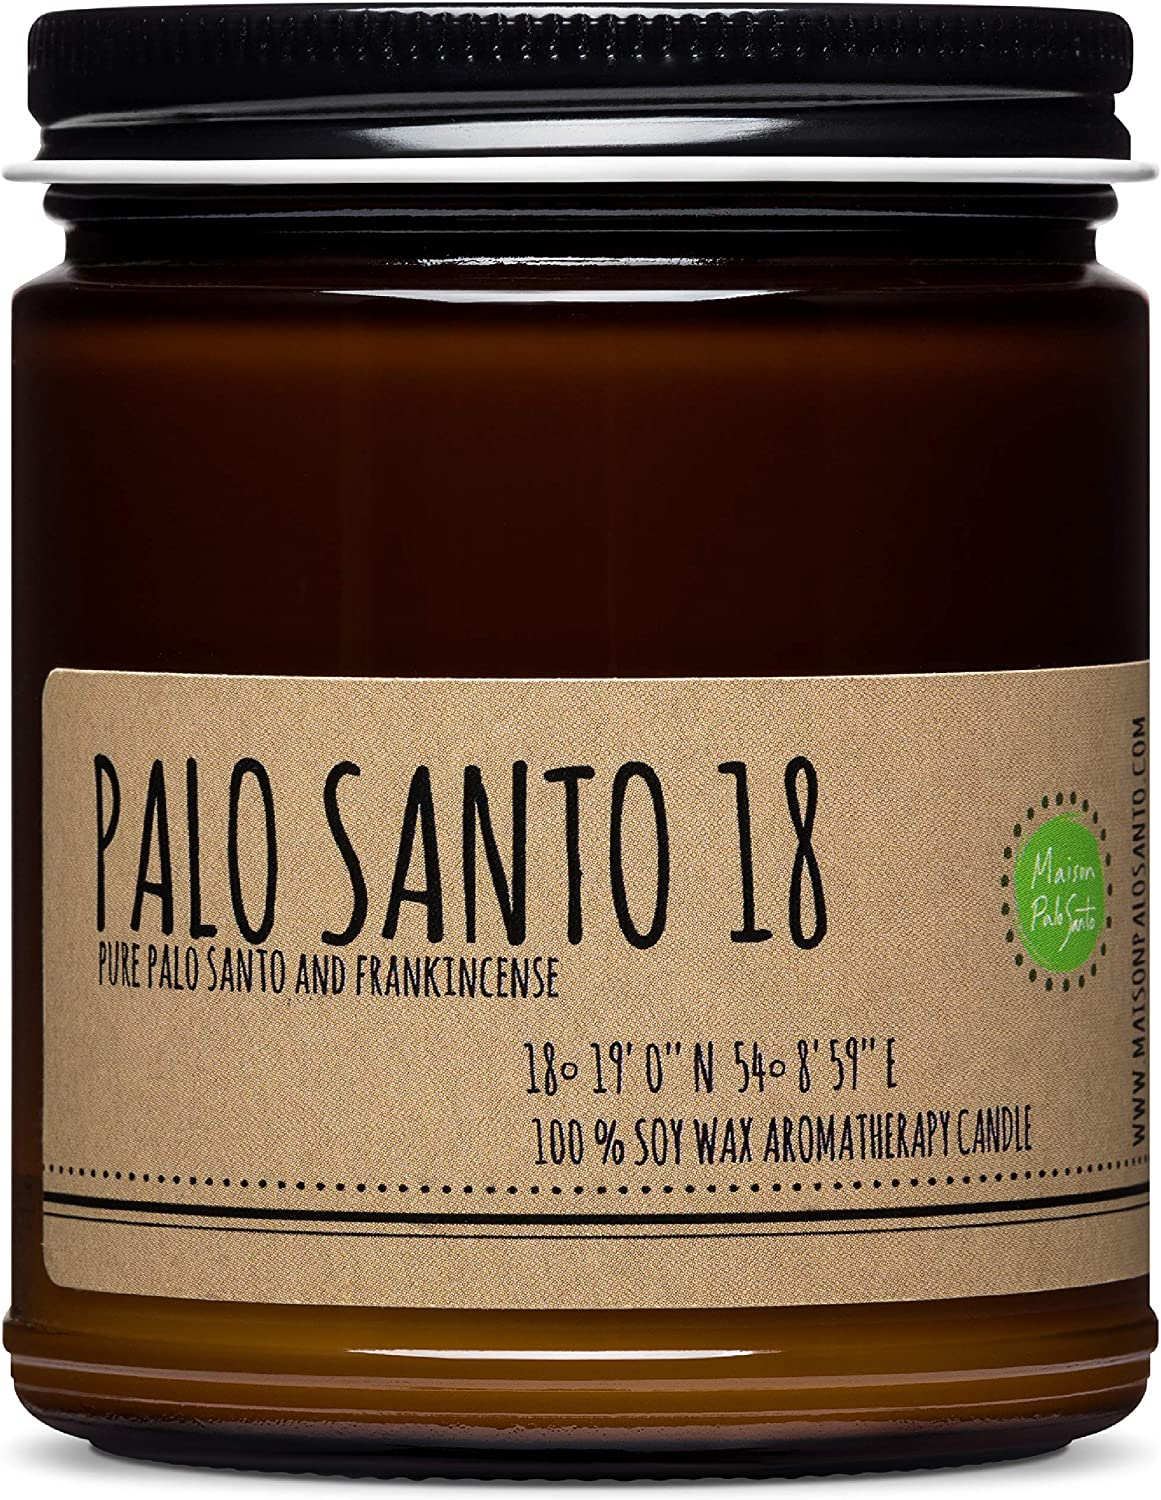 Maison Palo Santo Soy Wax Candle - Palo Santo and Frankincense Natural Scented Candle for Aromatherapy, Negative Energy Cleansing, Chakra Balancing and Meditation, 9 oz